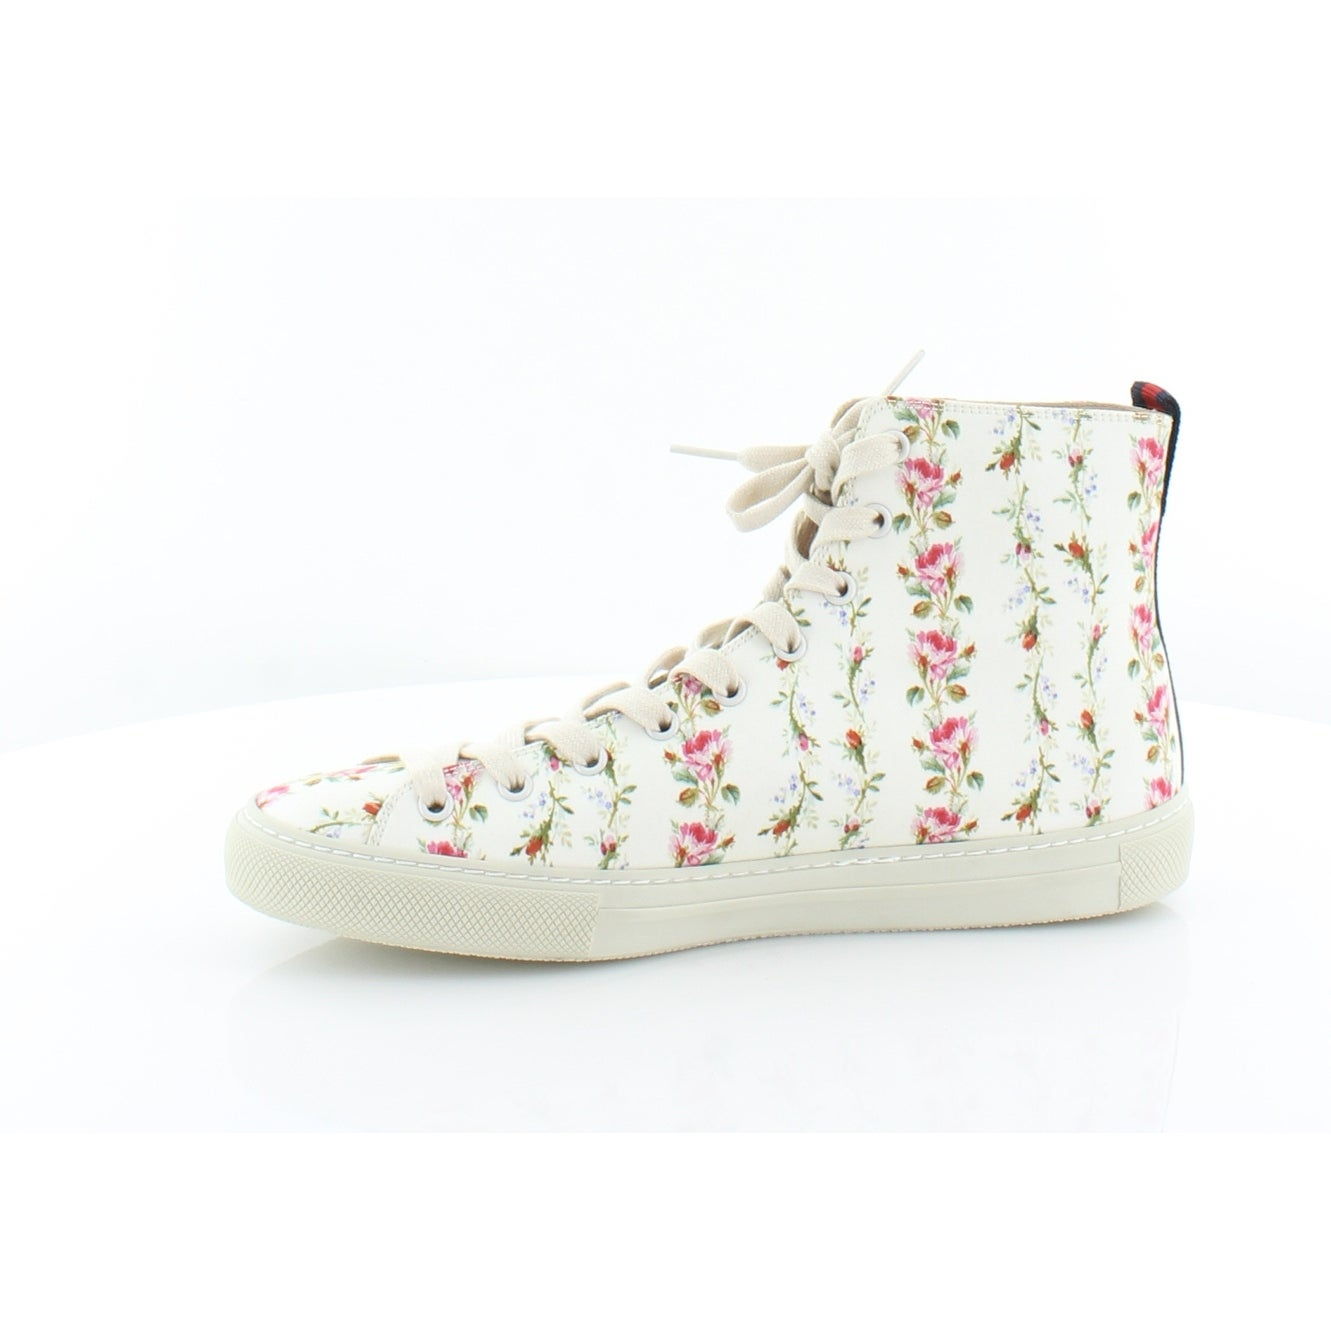 c19038509642 Shop Gucci Major Blind For Love Rose Print High Top Sneakers Women s  Fashion Sneakers Ivory Ivory H.Red BR - 9.5 - Free Shipping Today -  Overstock - ...